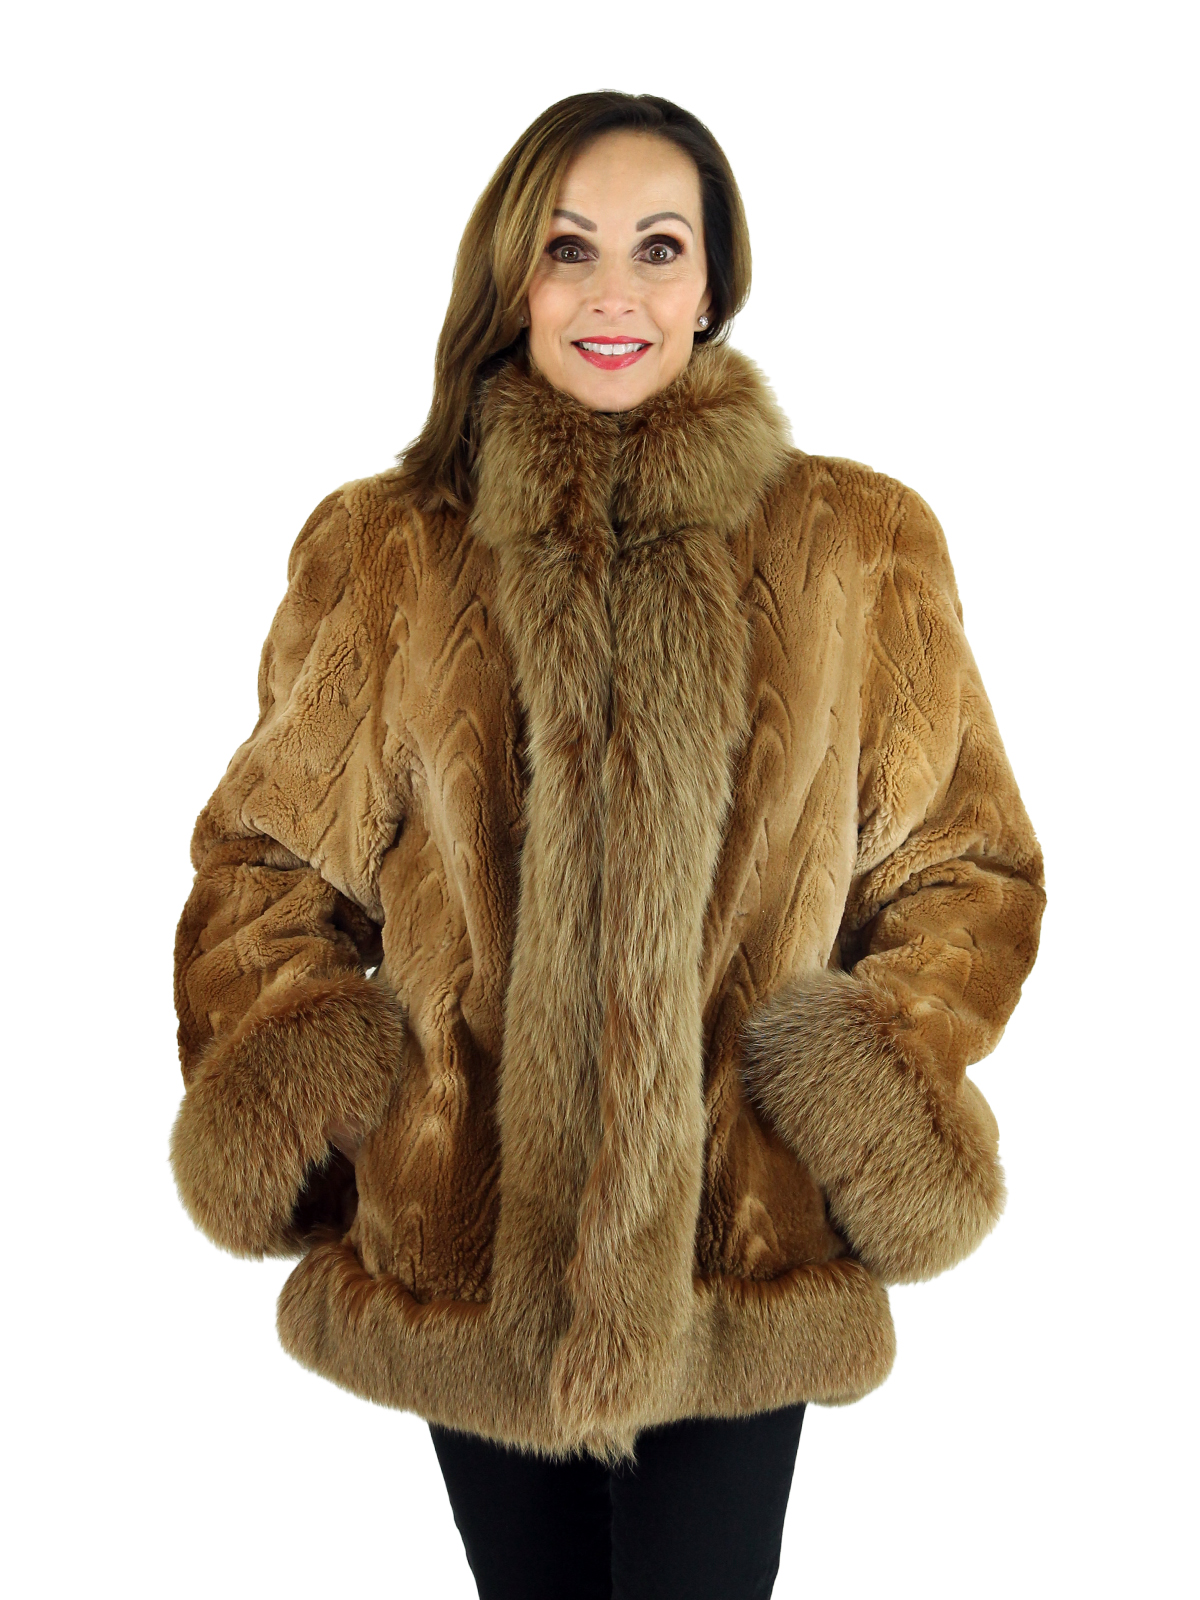 Woman's Caramel Sheared Beaver Fur Jacket with Fox Trim and Laser Grooving